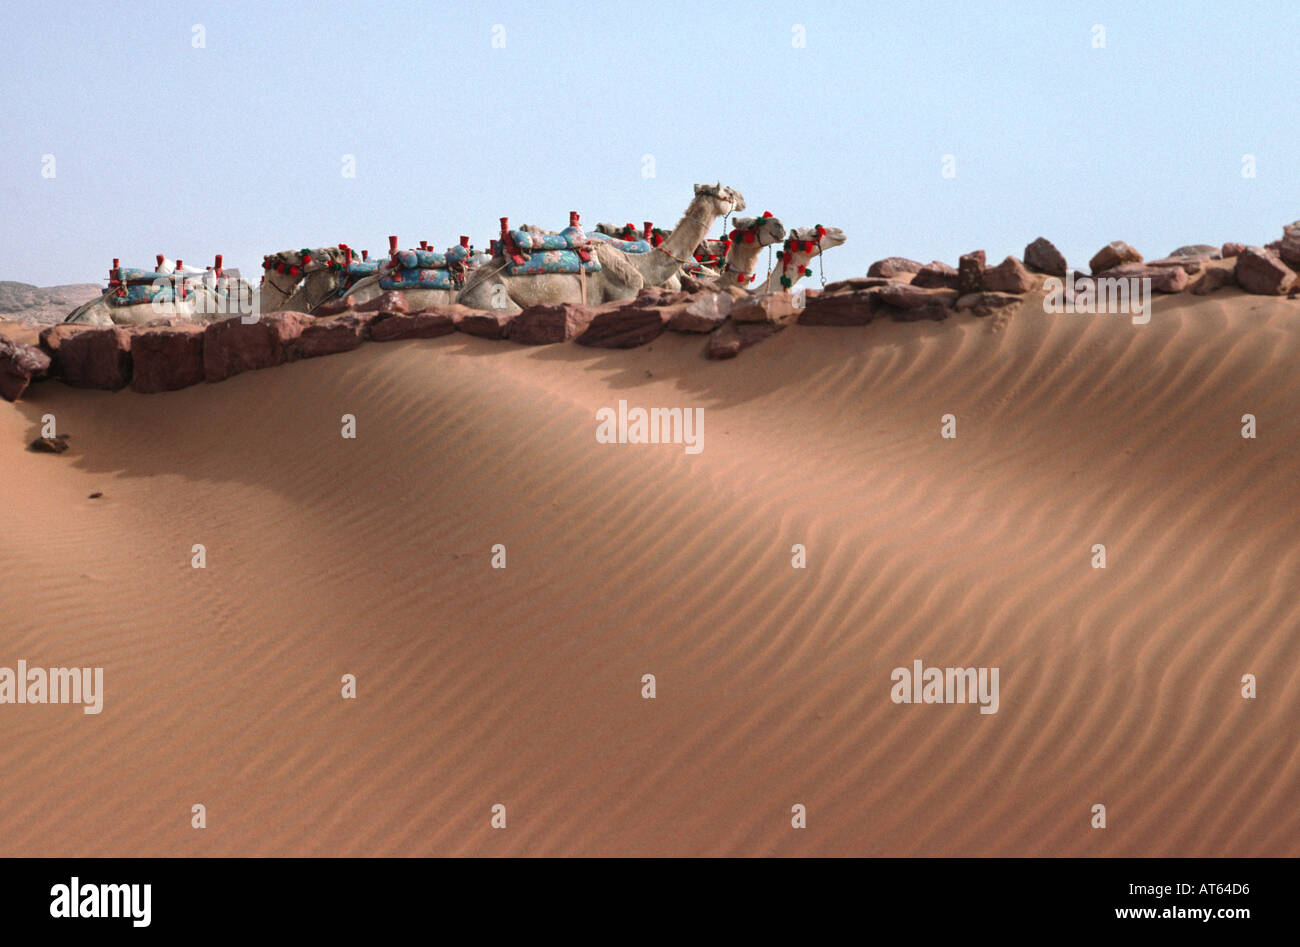 Camels in the Desert. Wadi al-Sebua, New Sebua, Upper Egypt, Egypt. - Stock Image